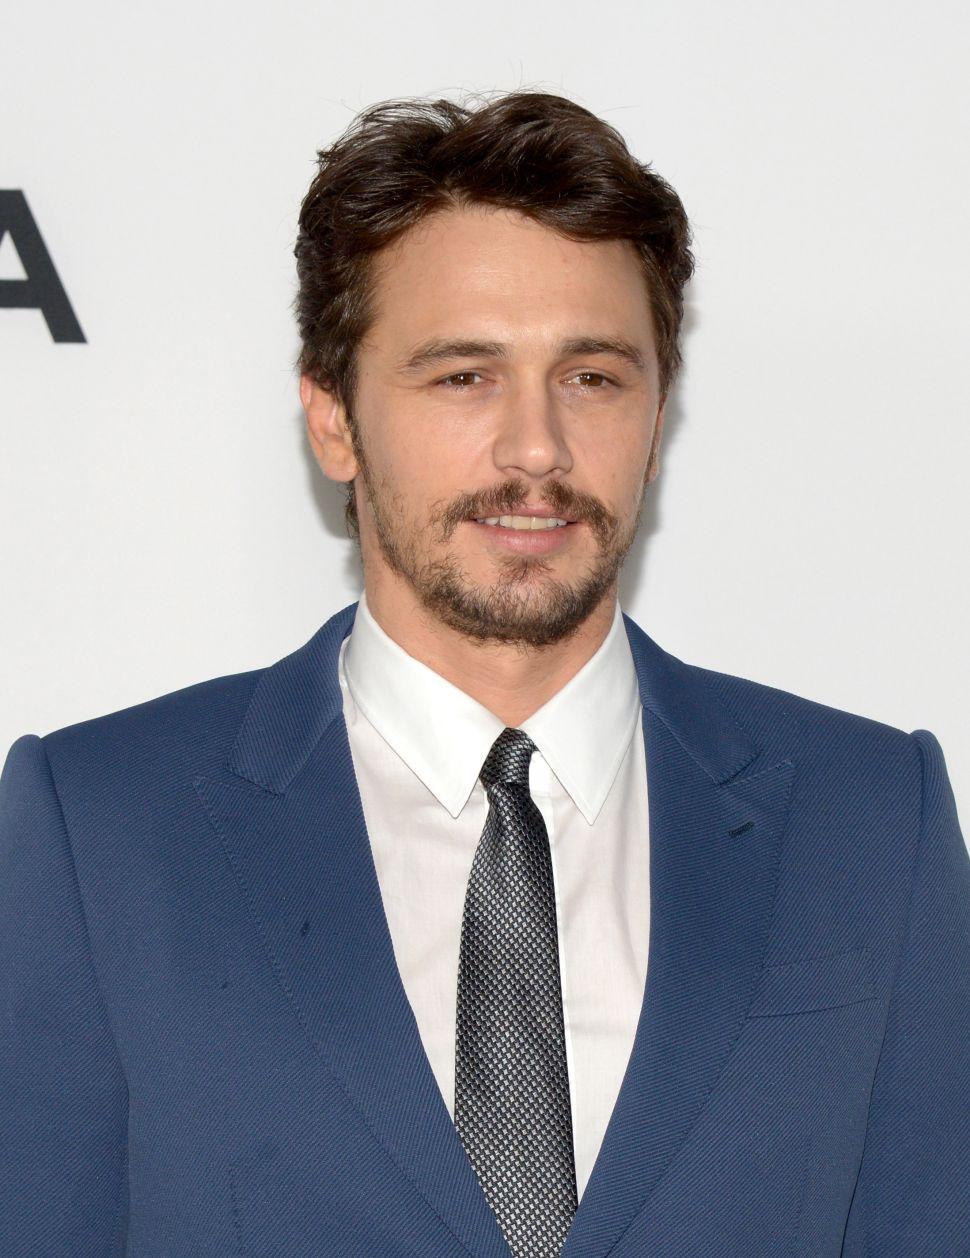 Bungalow 69: A(nother) Letter to James Franco